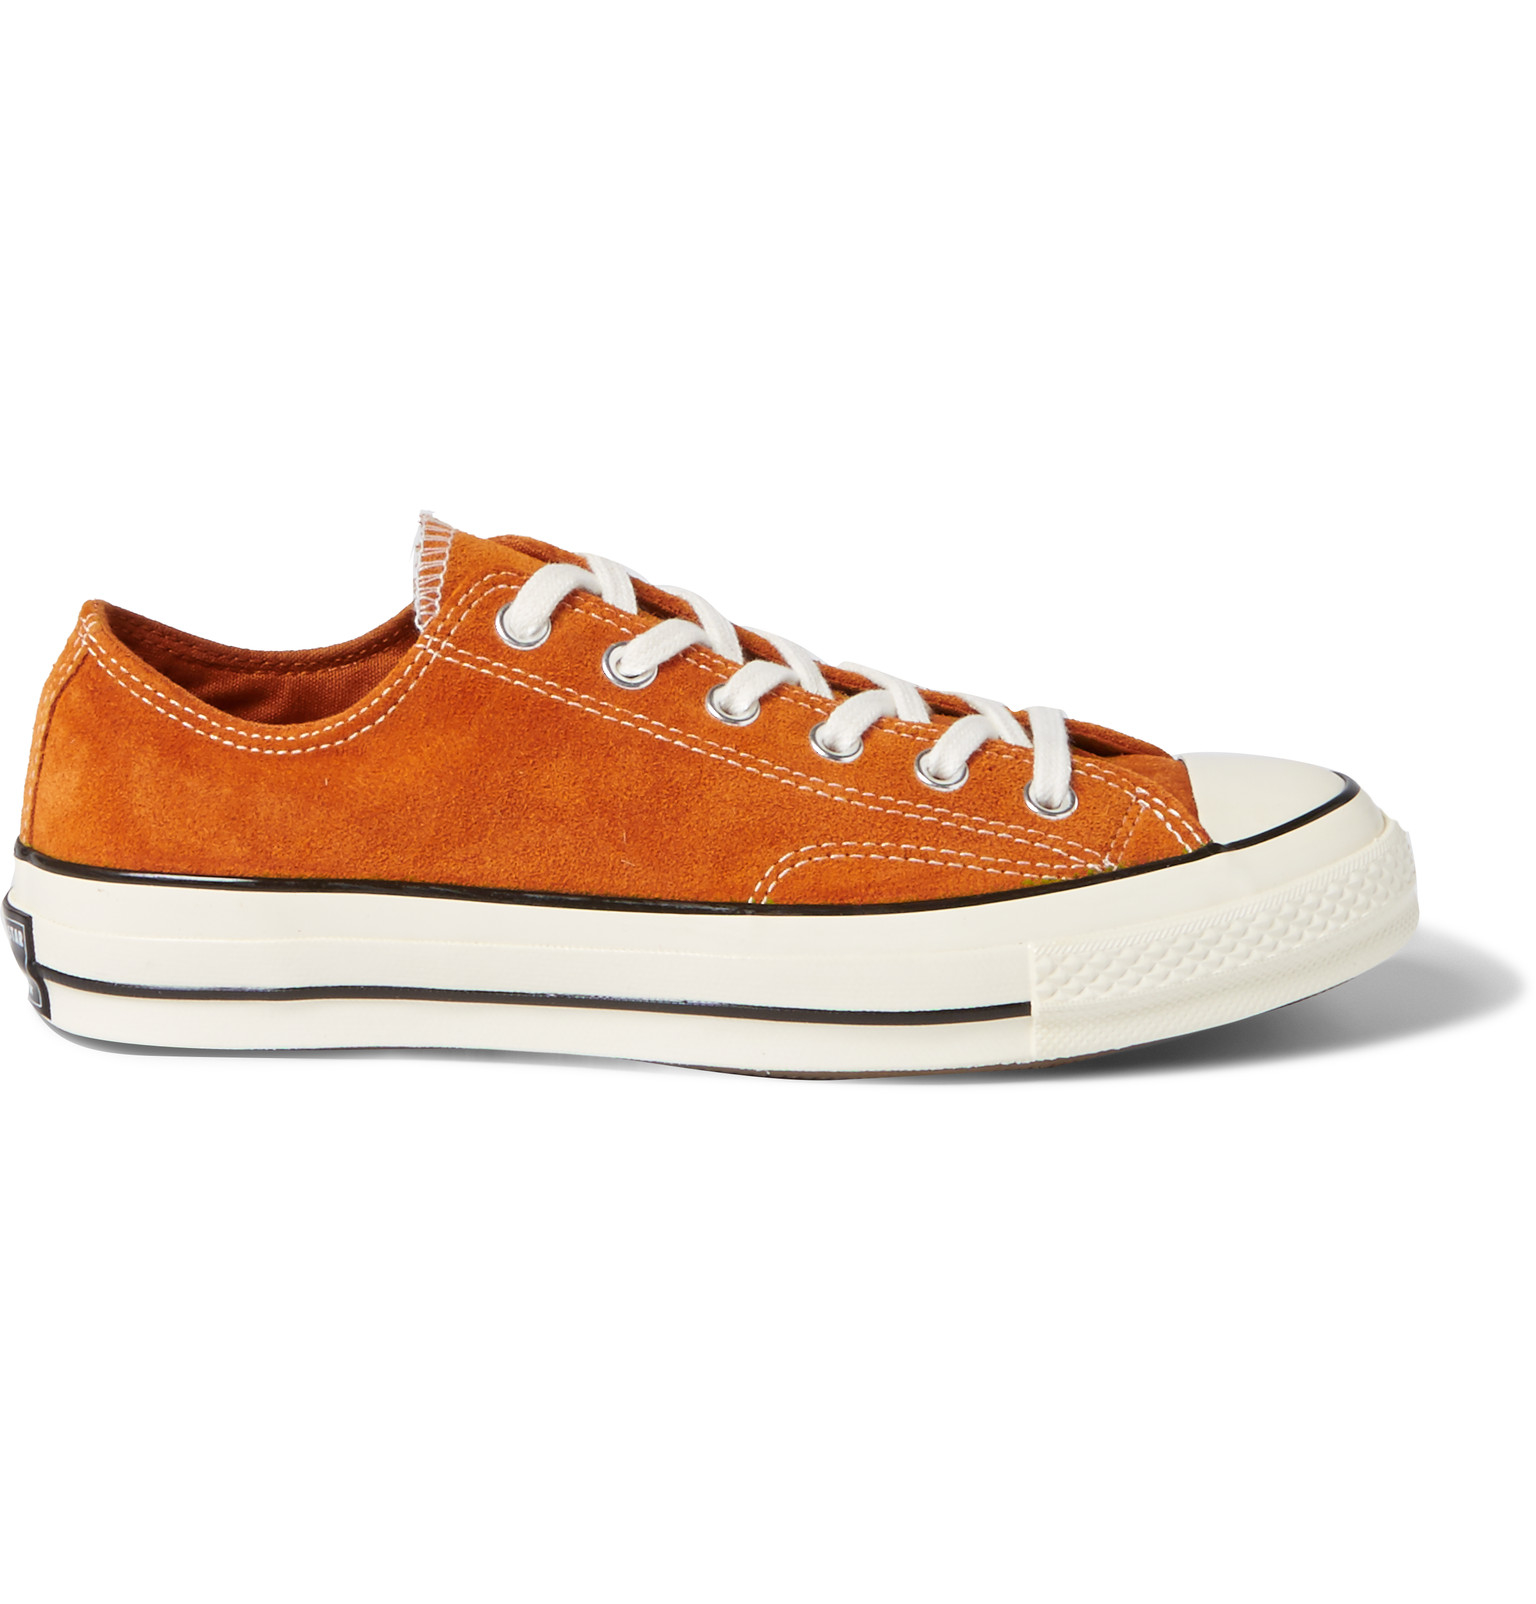 114de88aab0c Converse 1970s Chuck Taylor All Star Suede Sneakers in Orange for ...